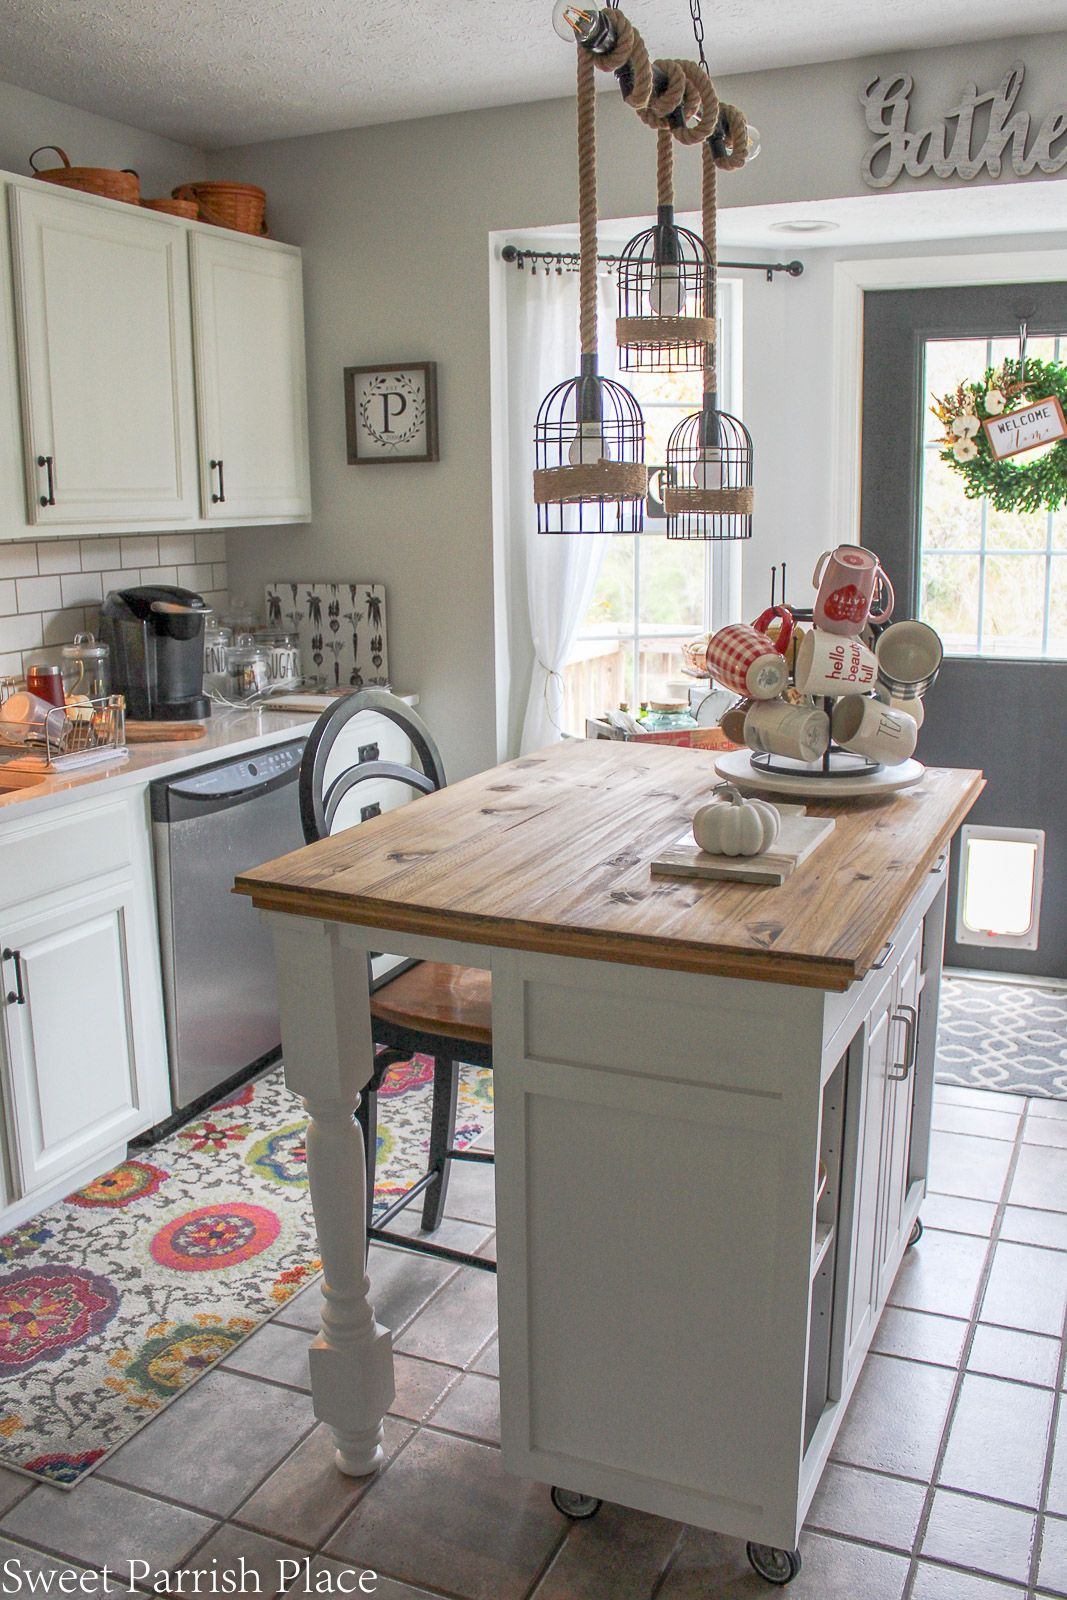 Top 29 Diy Ideas Adding Rustic Farmhouse Feels To Kitchen: Farmhouse Kitchen Island Makeover With Rustic Wood Top That Looks Like Butcher Block!